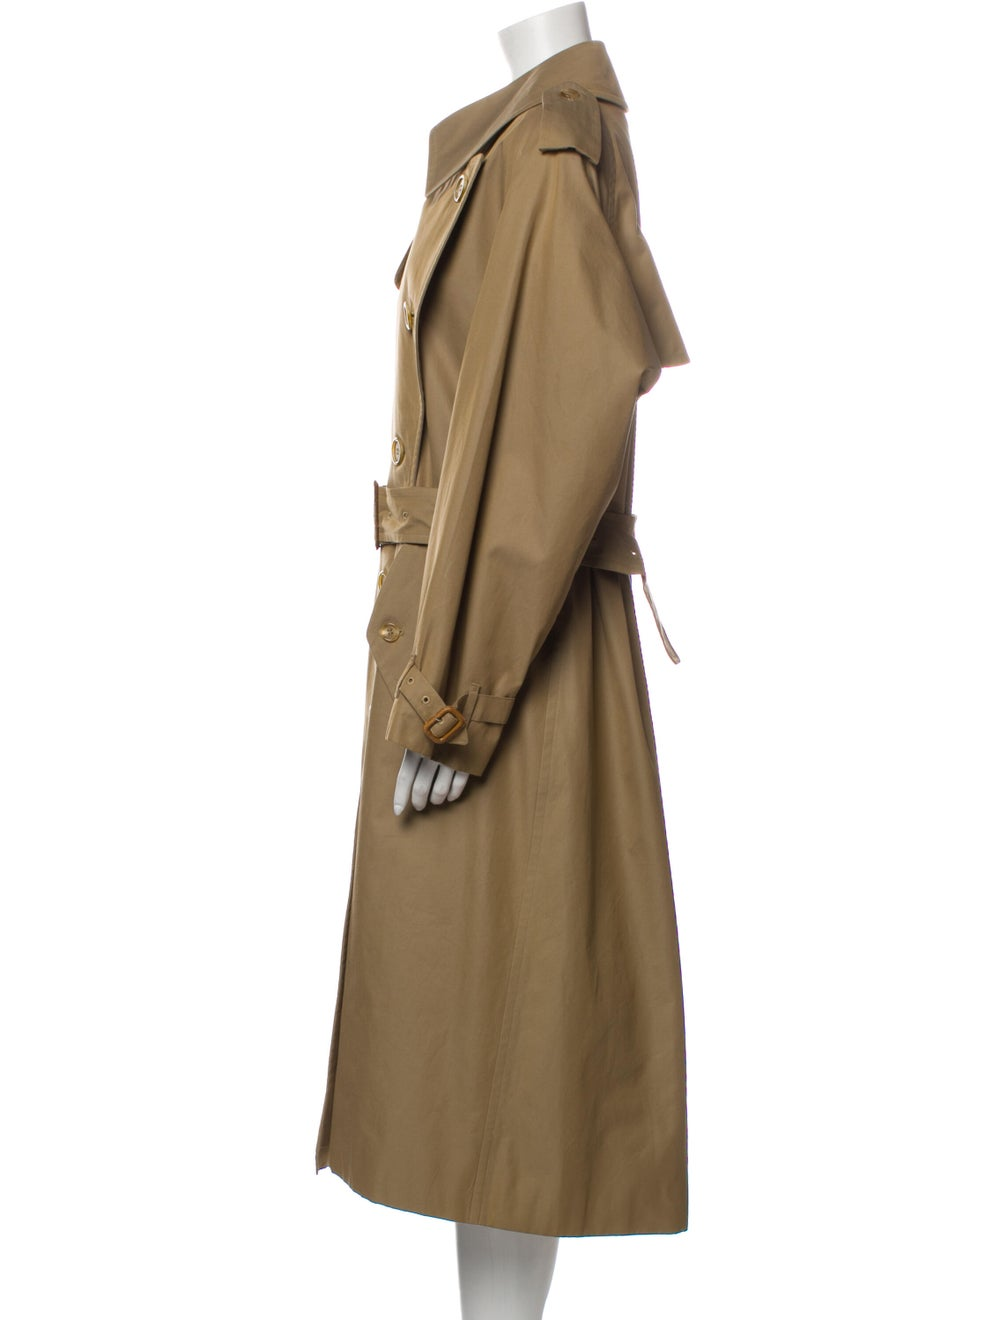 Burberry Vintage Trench Coat - image 2